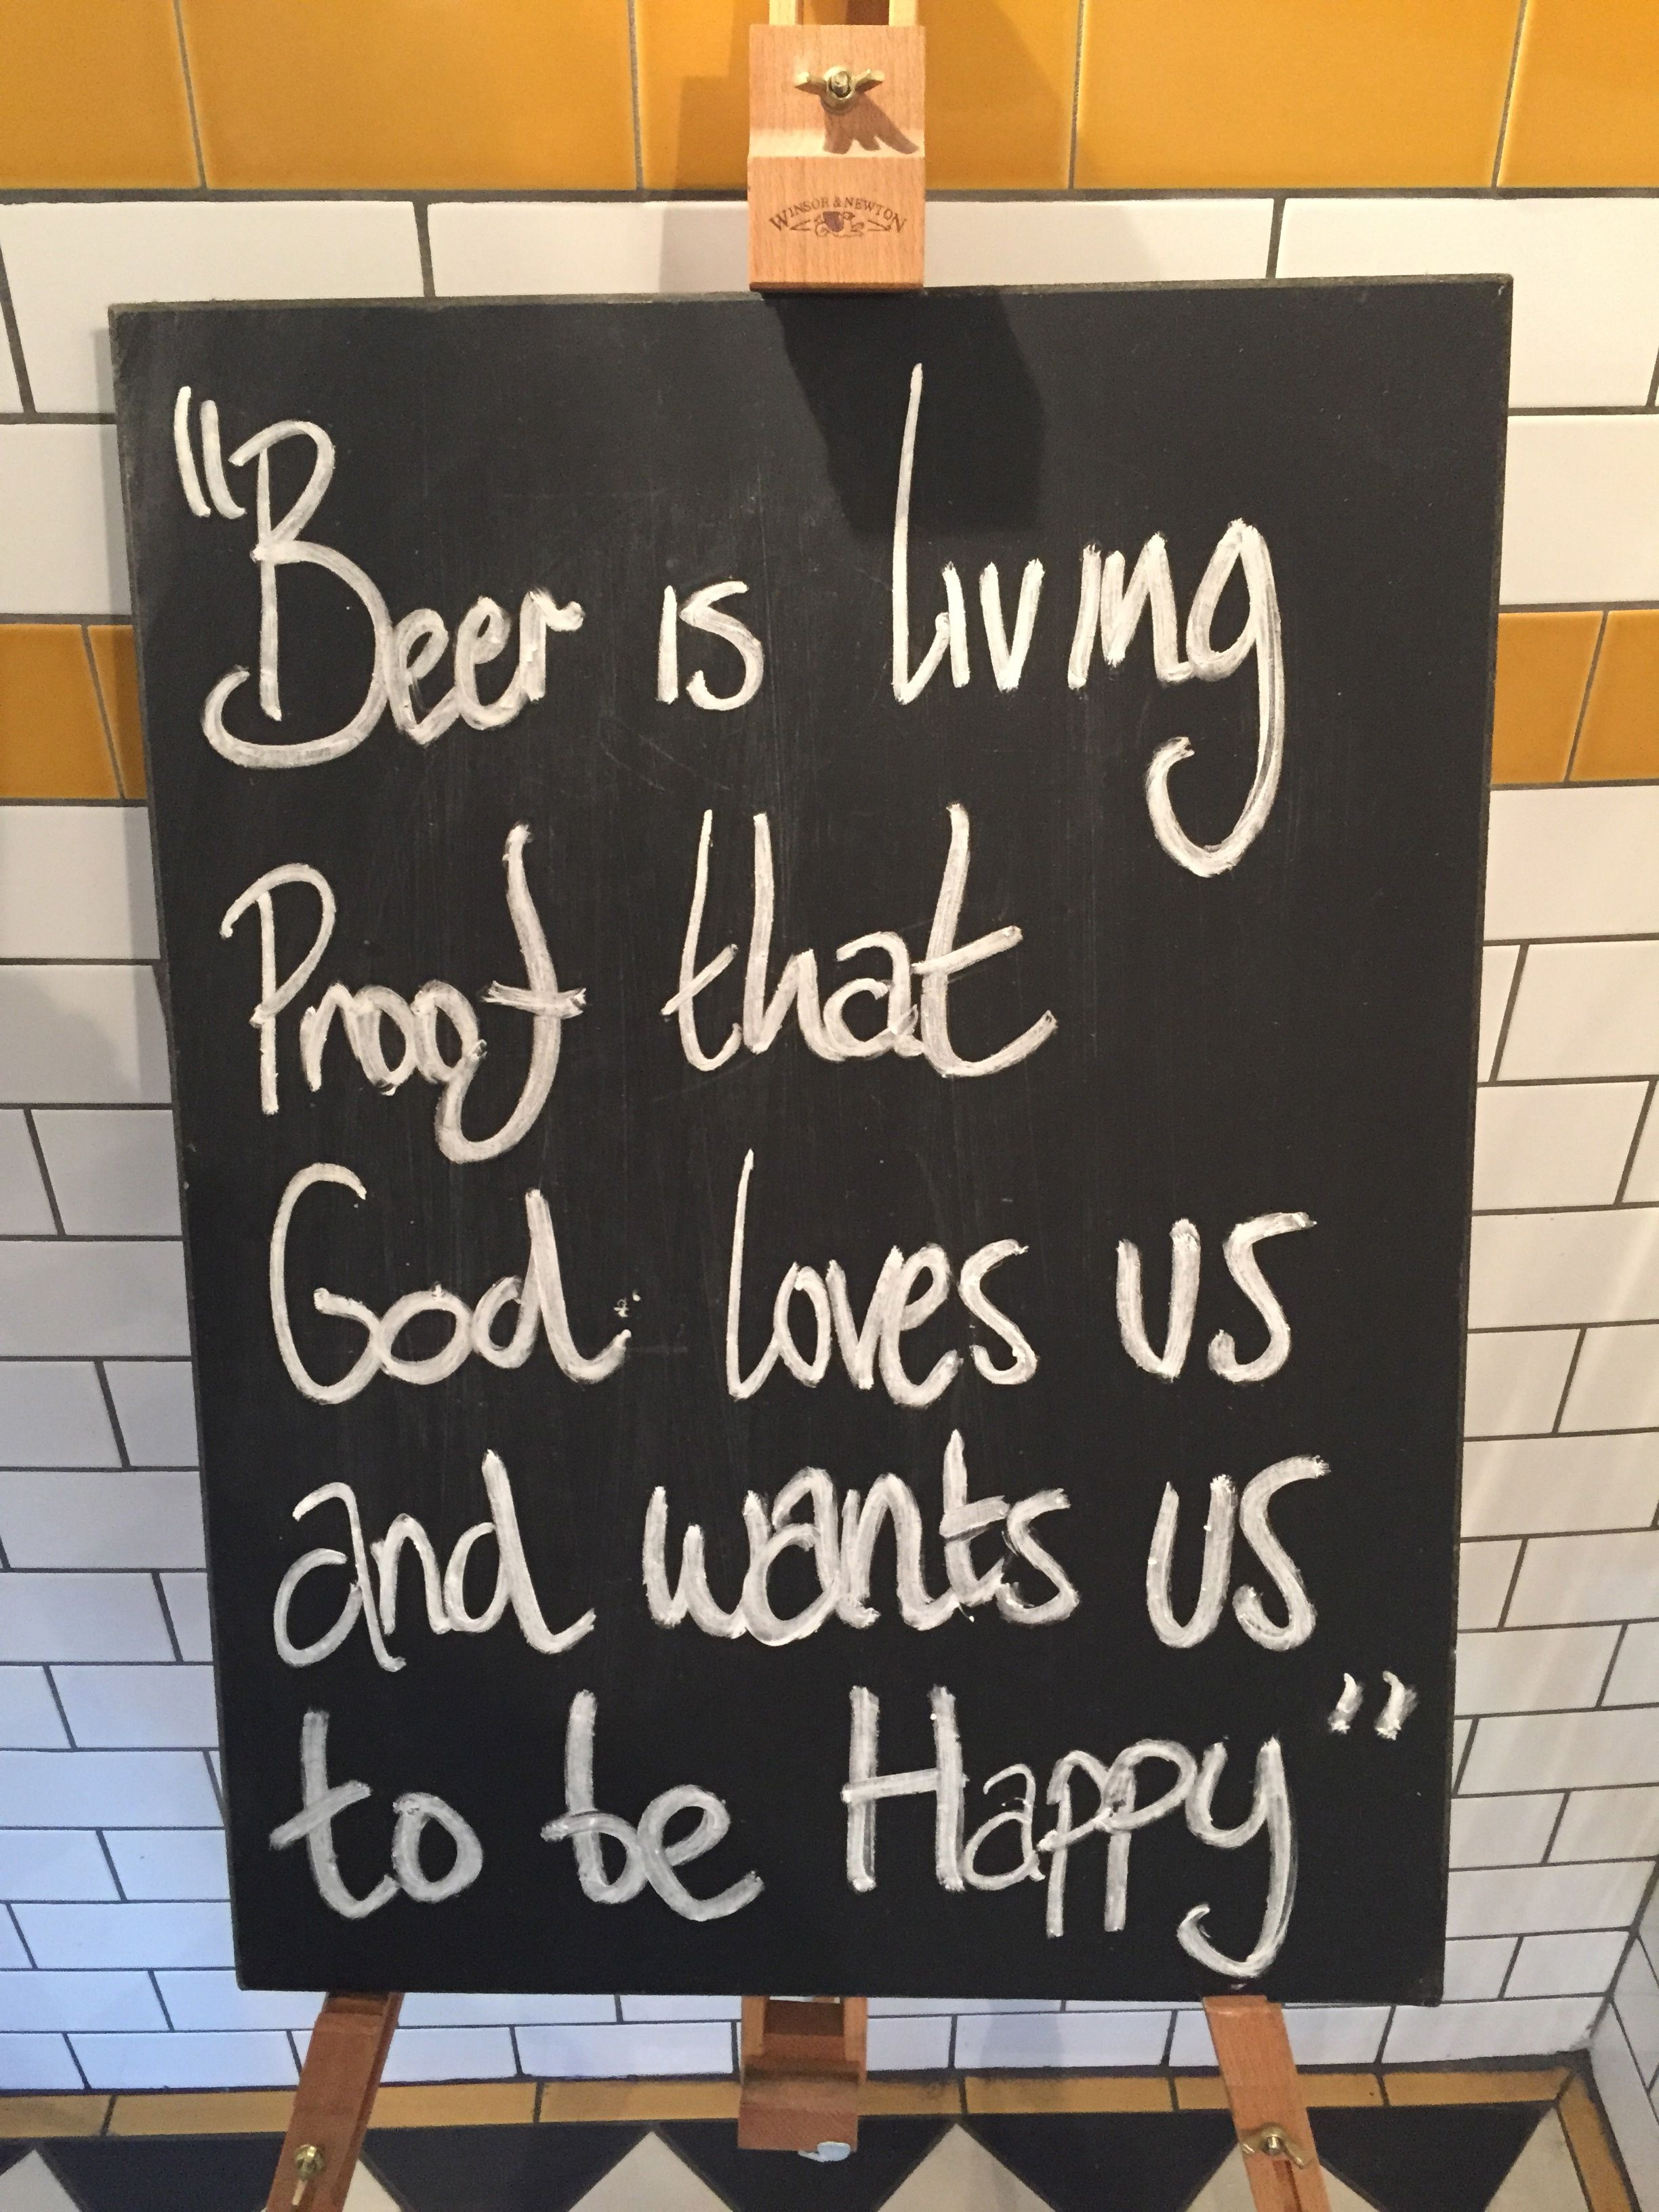 A lovely sentiment at a very nice little pub.